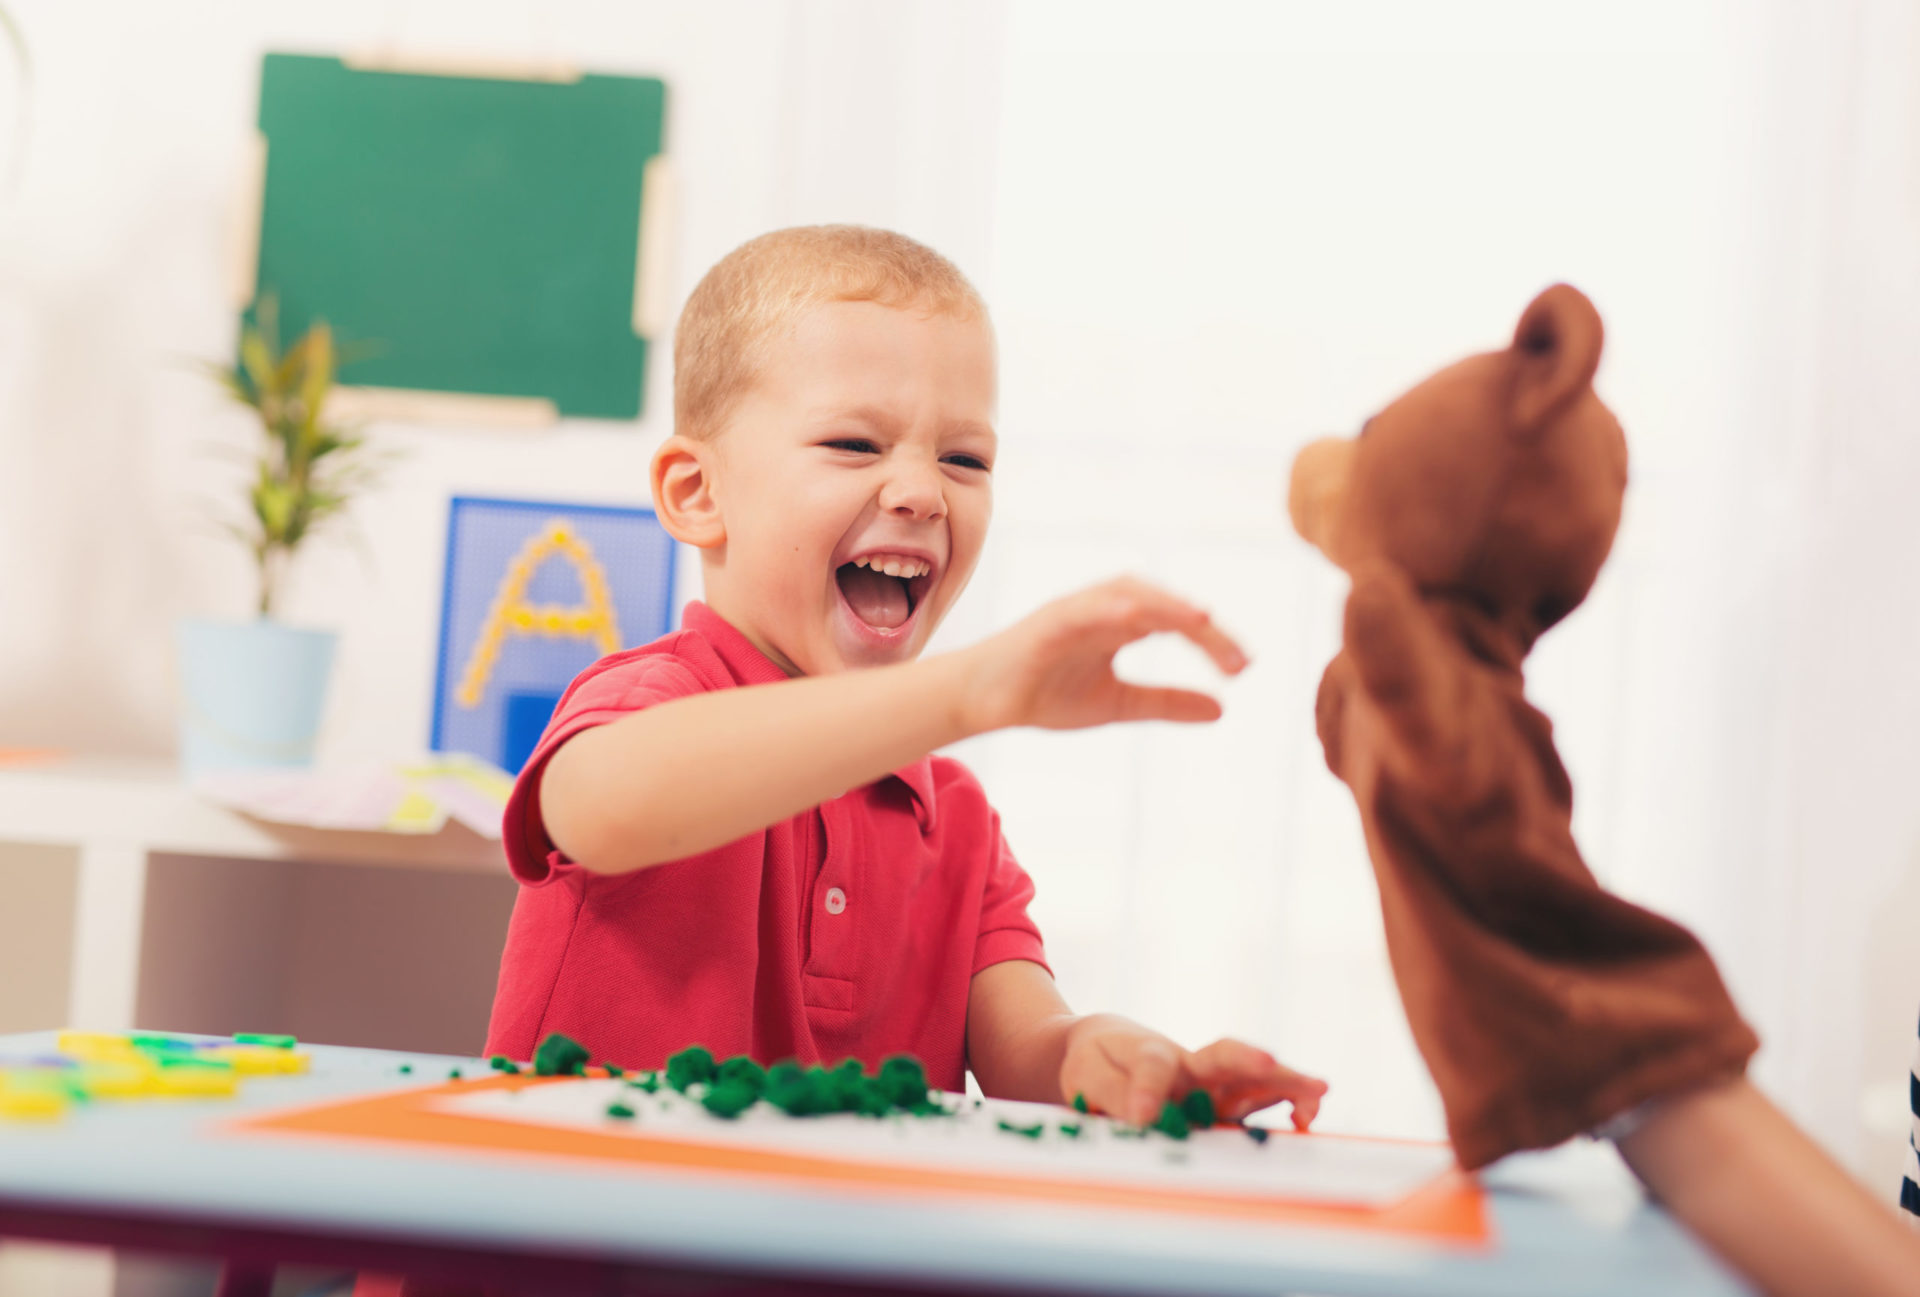 About APAC Academy of Play and Child Psychotherapy